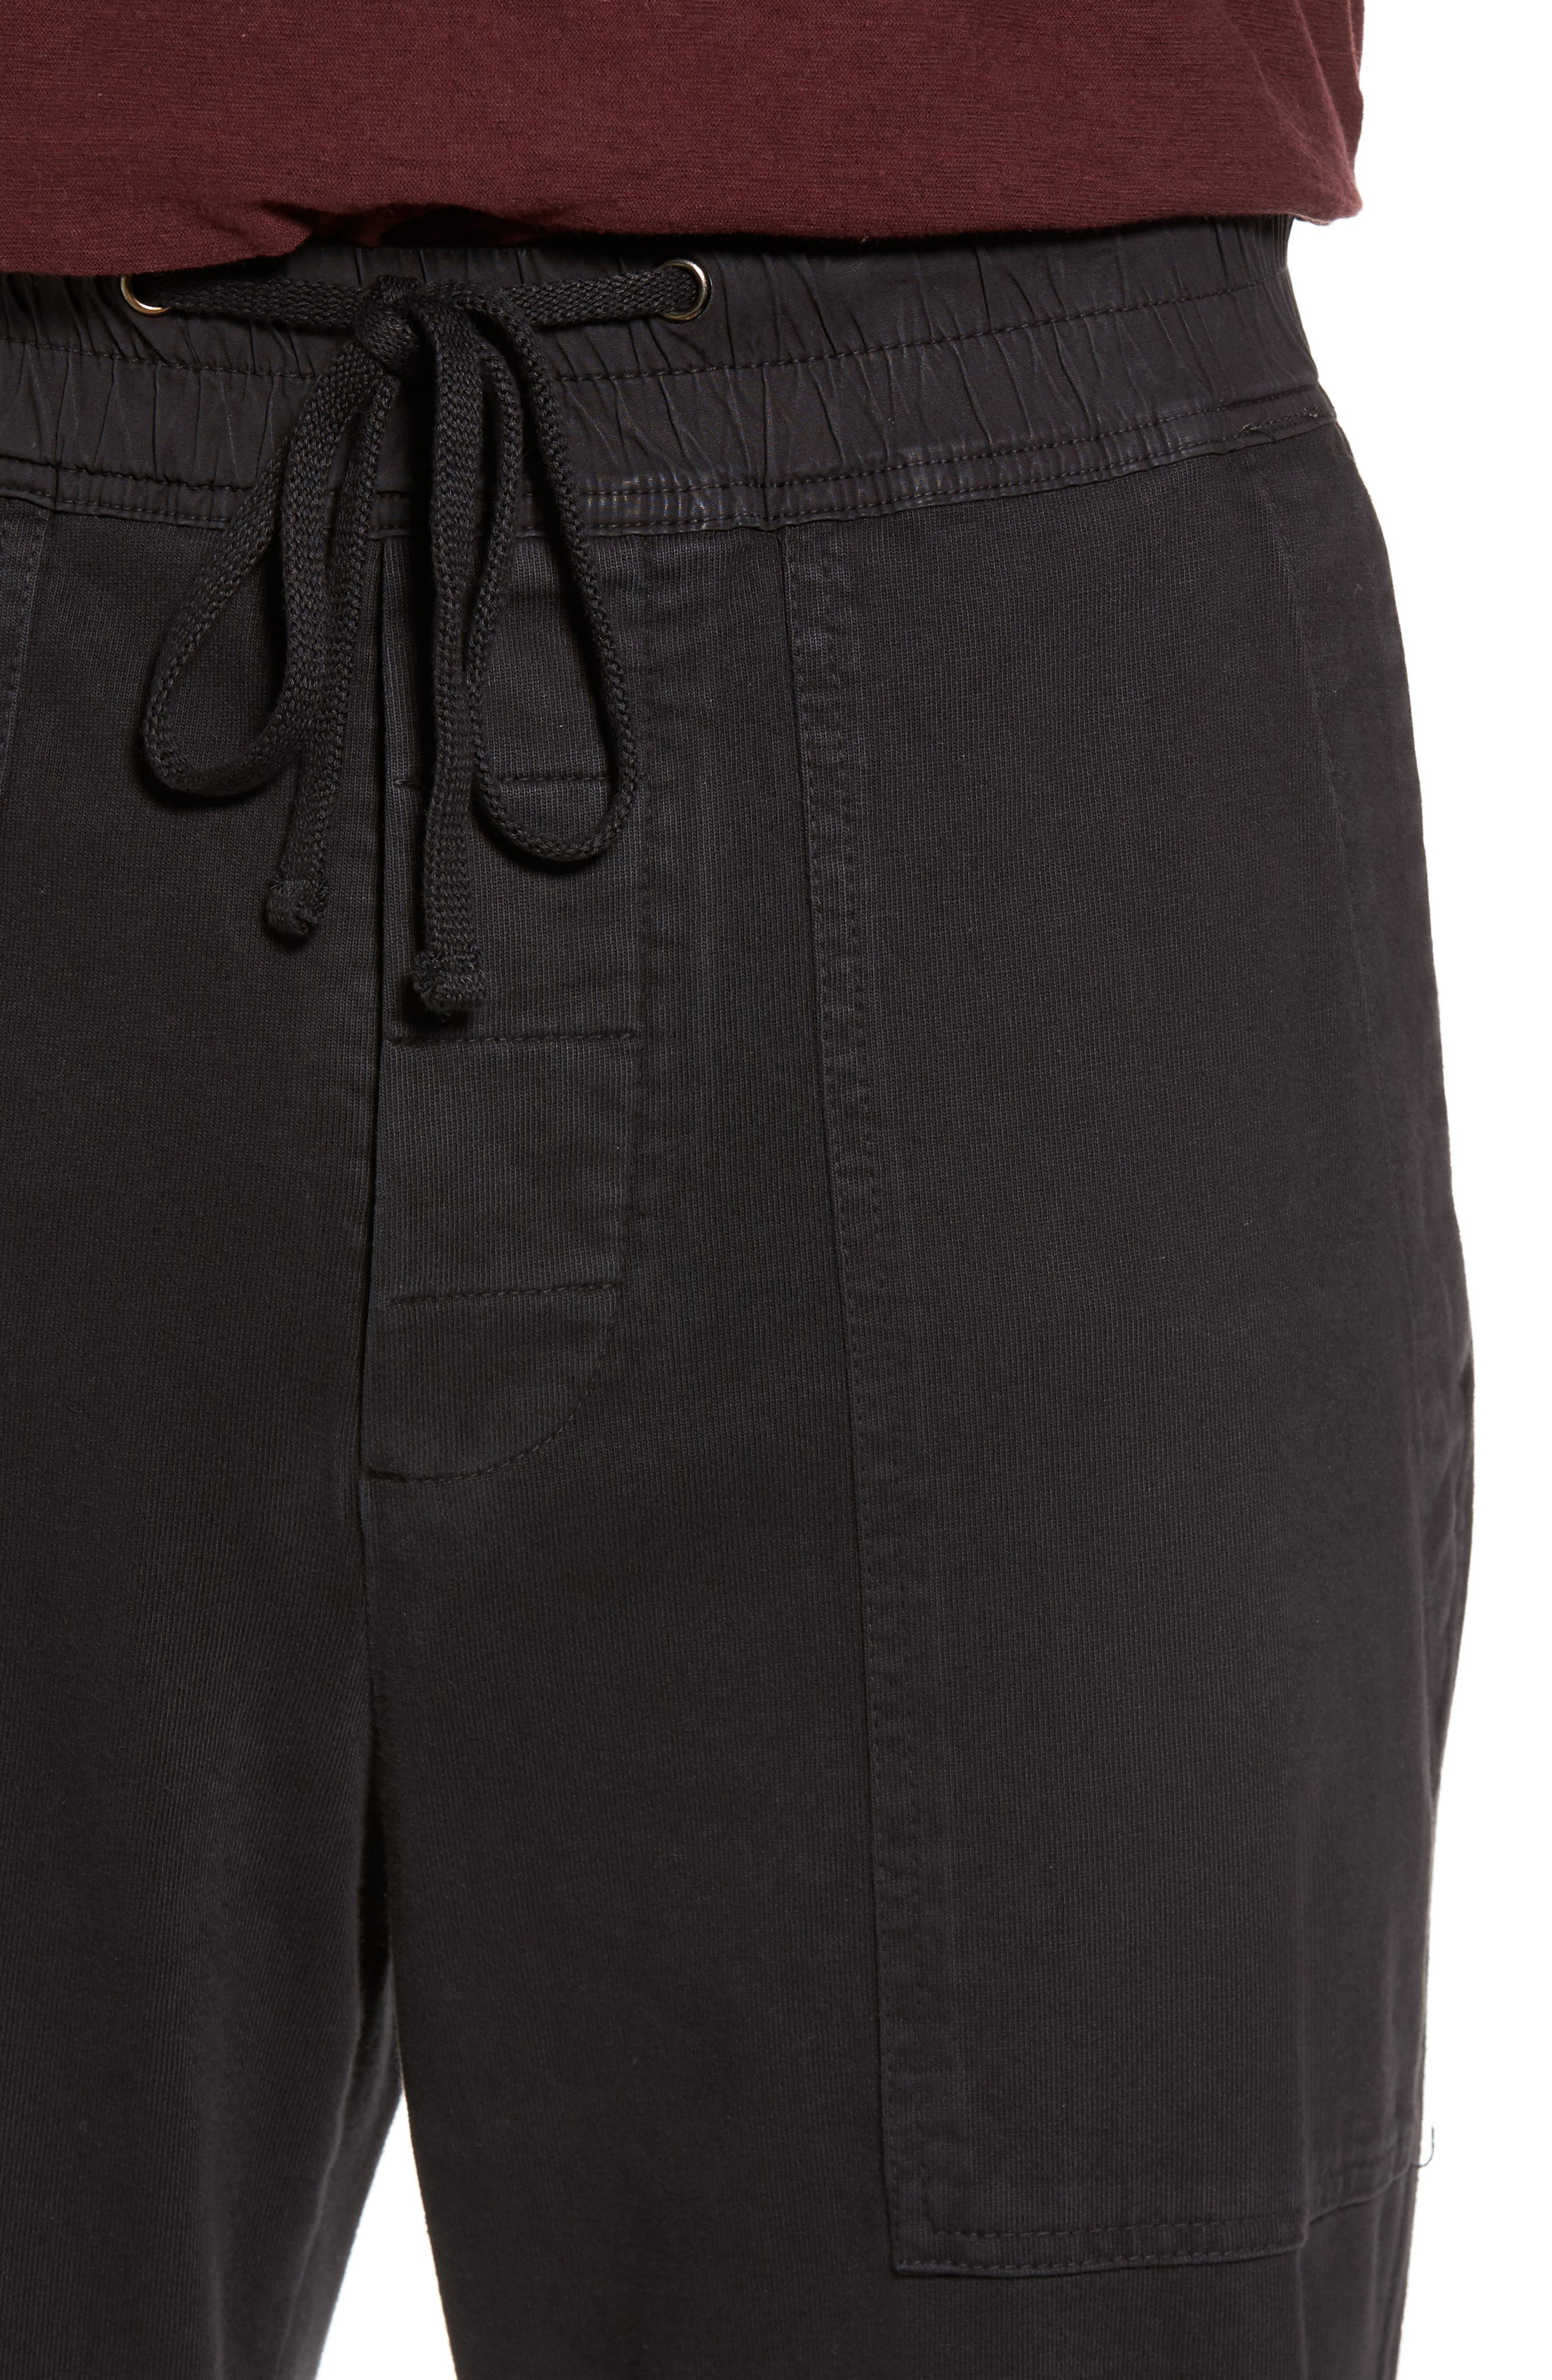 Jogger Pants,                             Alternate thumbnail 4, color,                             Carbon Pigment